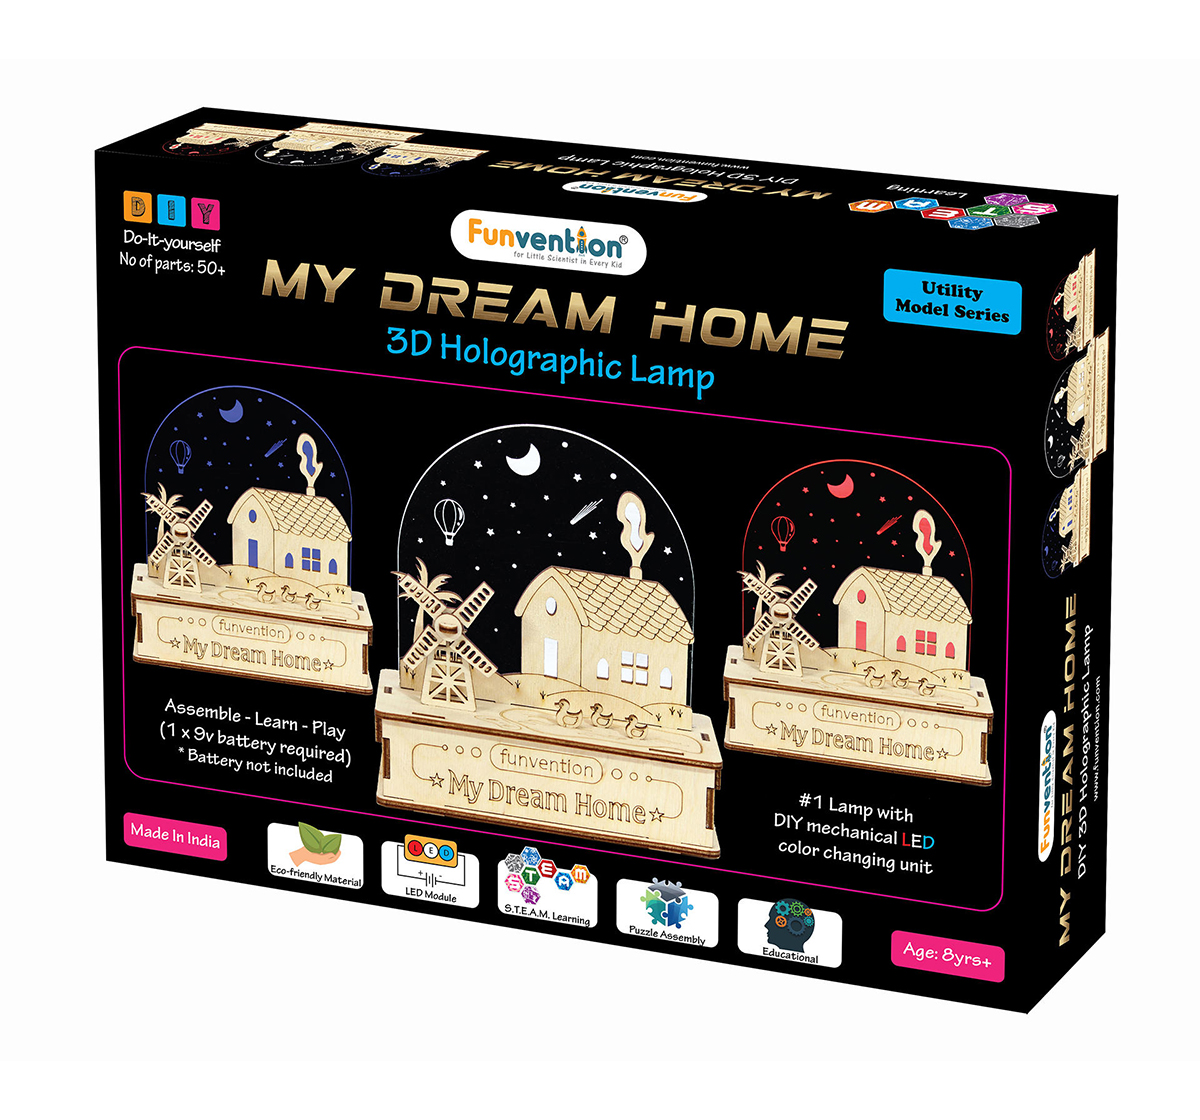 Funvention | Funvention 3D Holographic Lamp - My Dream Home (Utility Series) Stem for Kids Age 8Y+